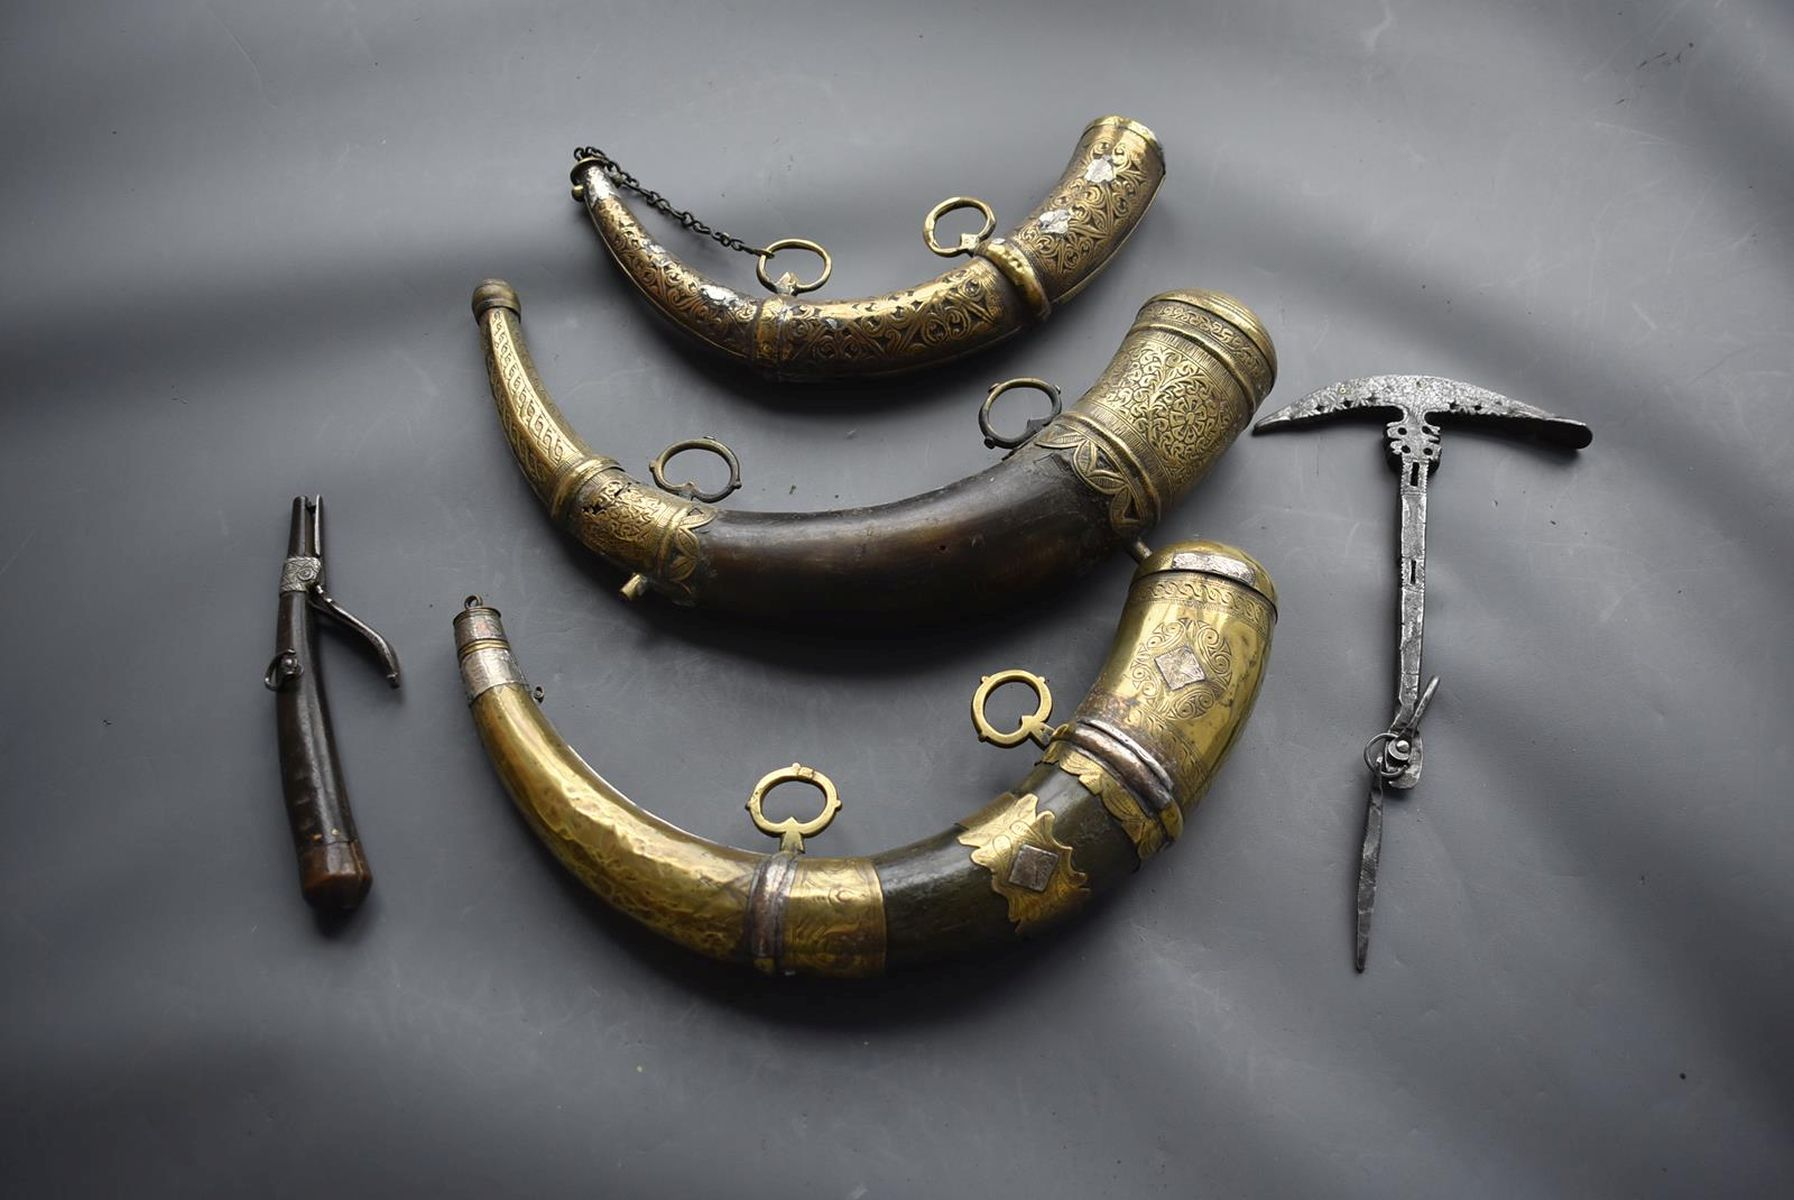 THREE VARIOUS NORTH AFRICAN POWDER HORNS, each of natural curving form with ornate brass mounts, - Image 2 of 11